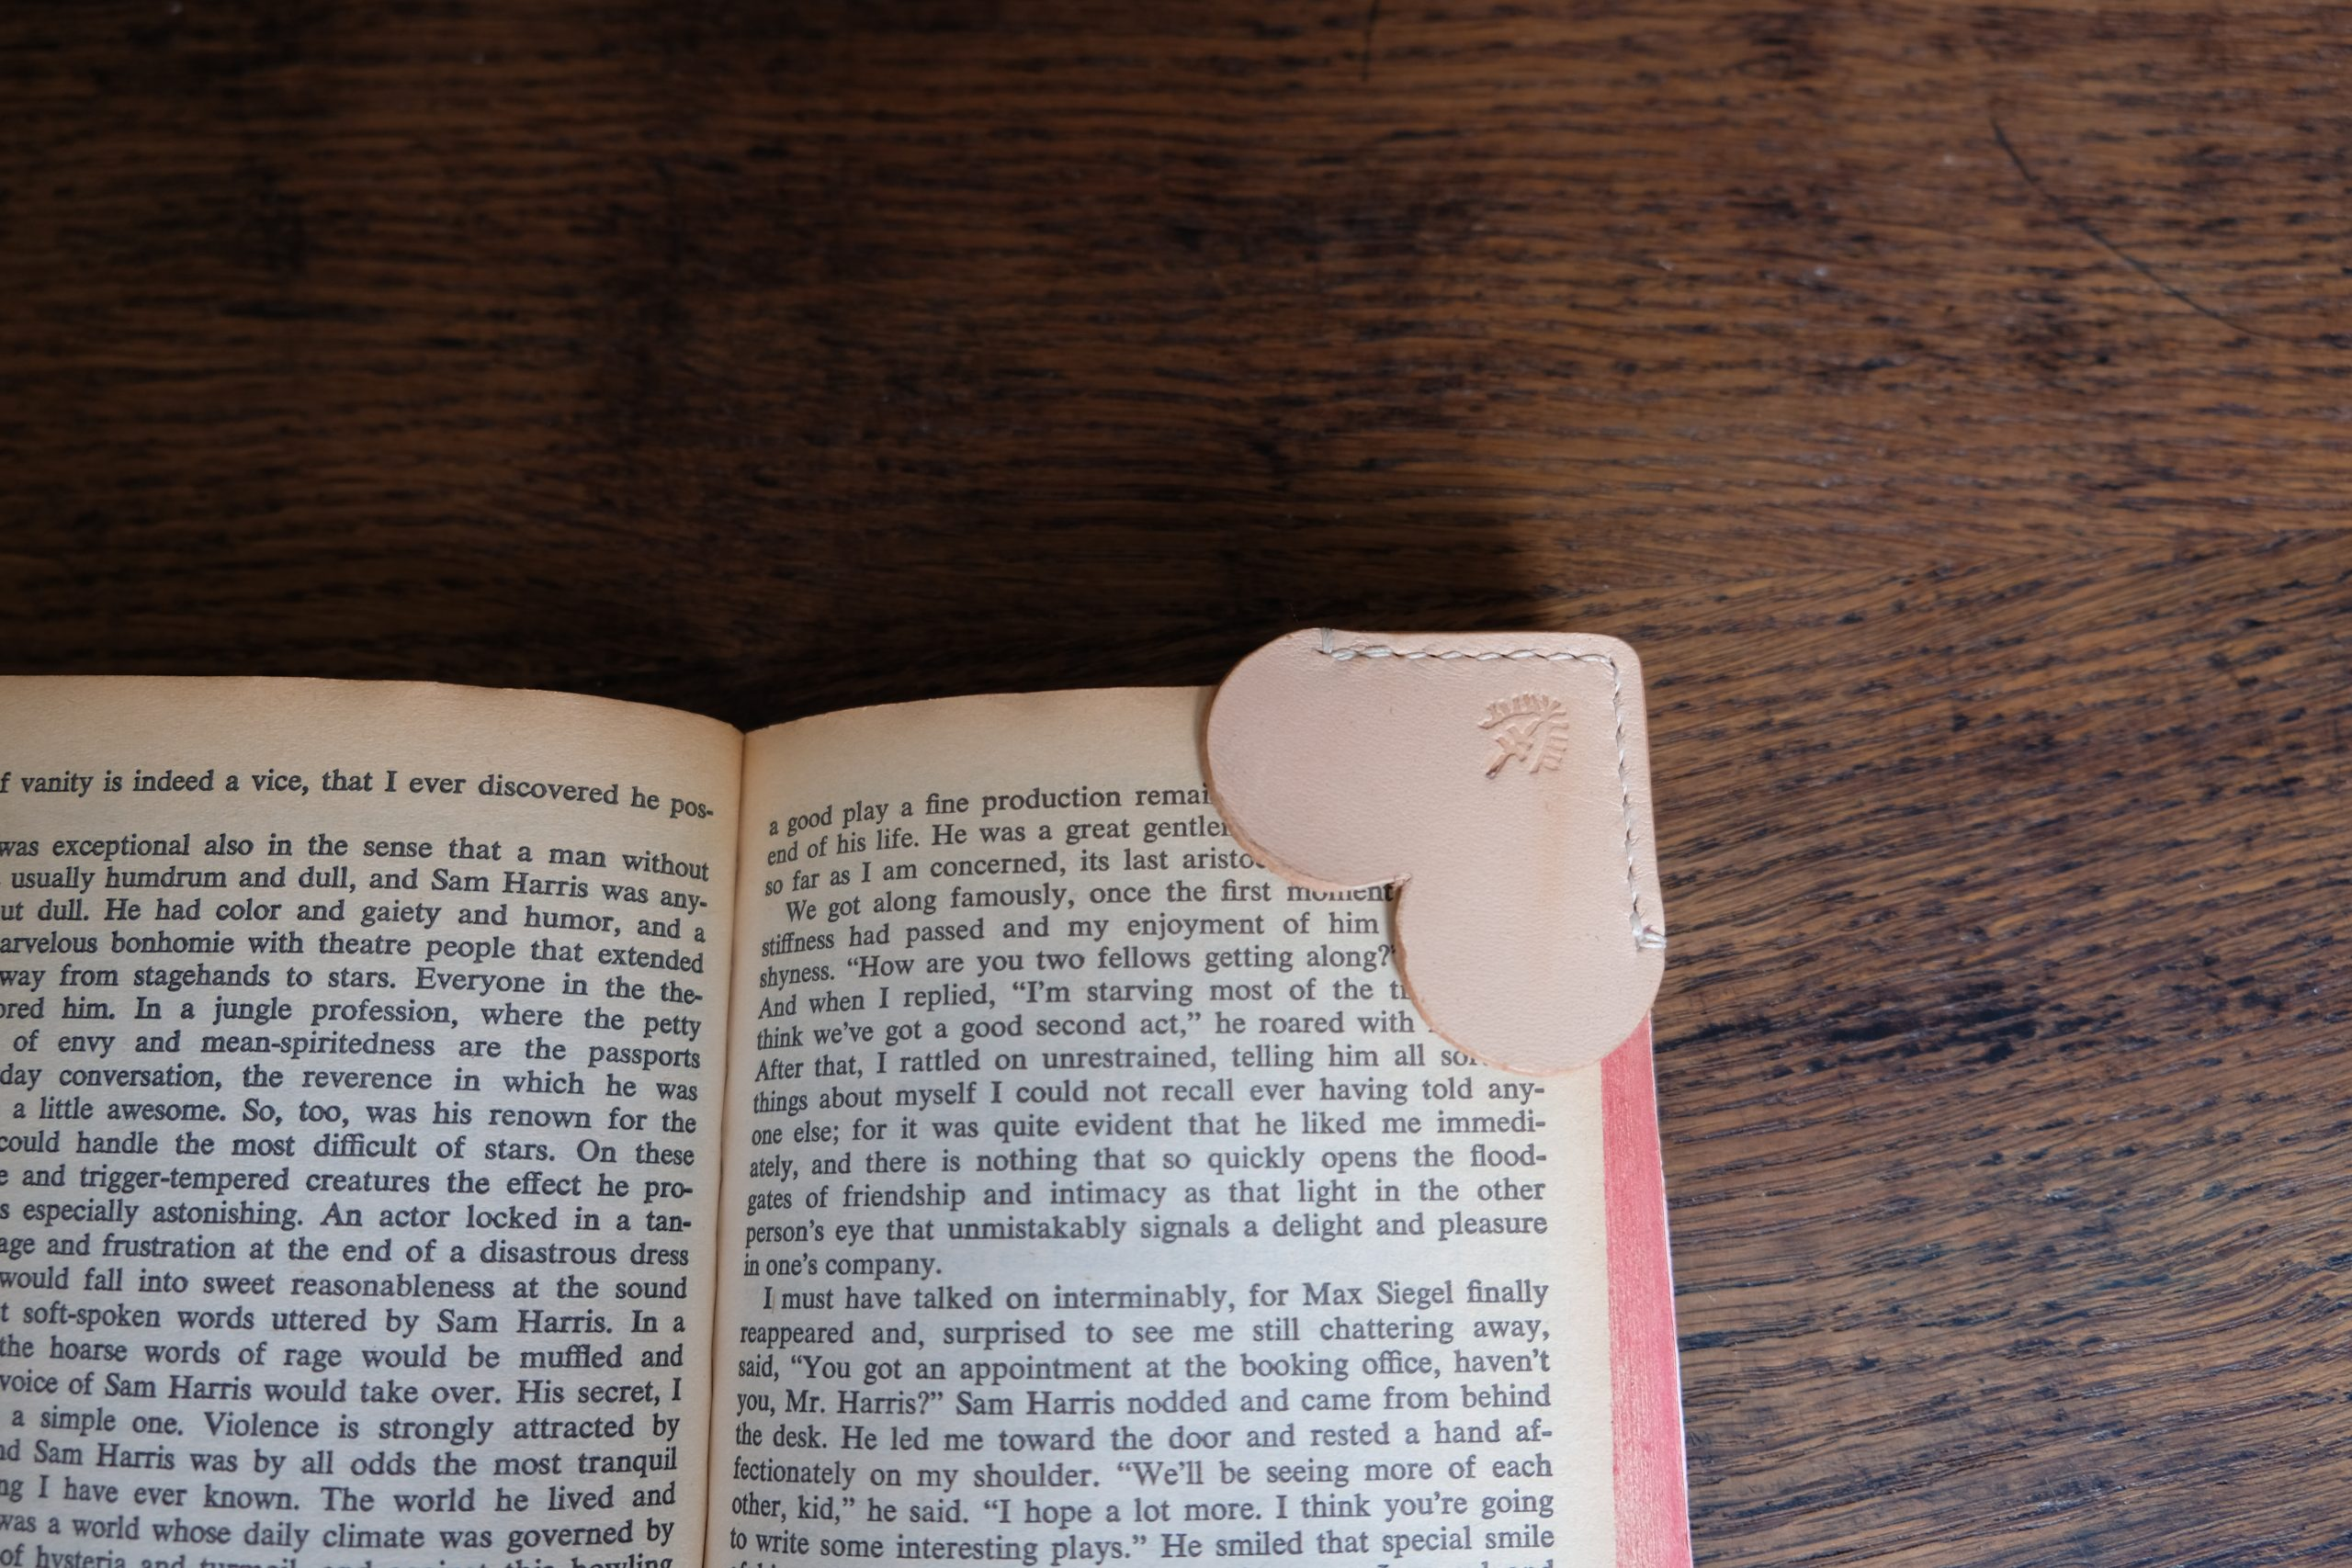 lerif designs love bookmark on a book corner with wood background